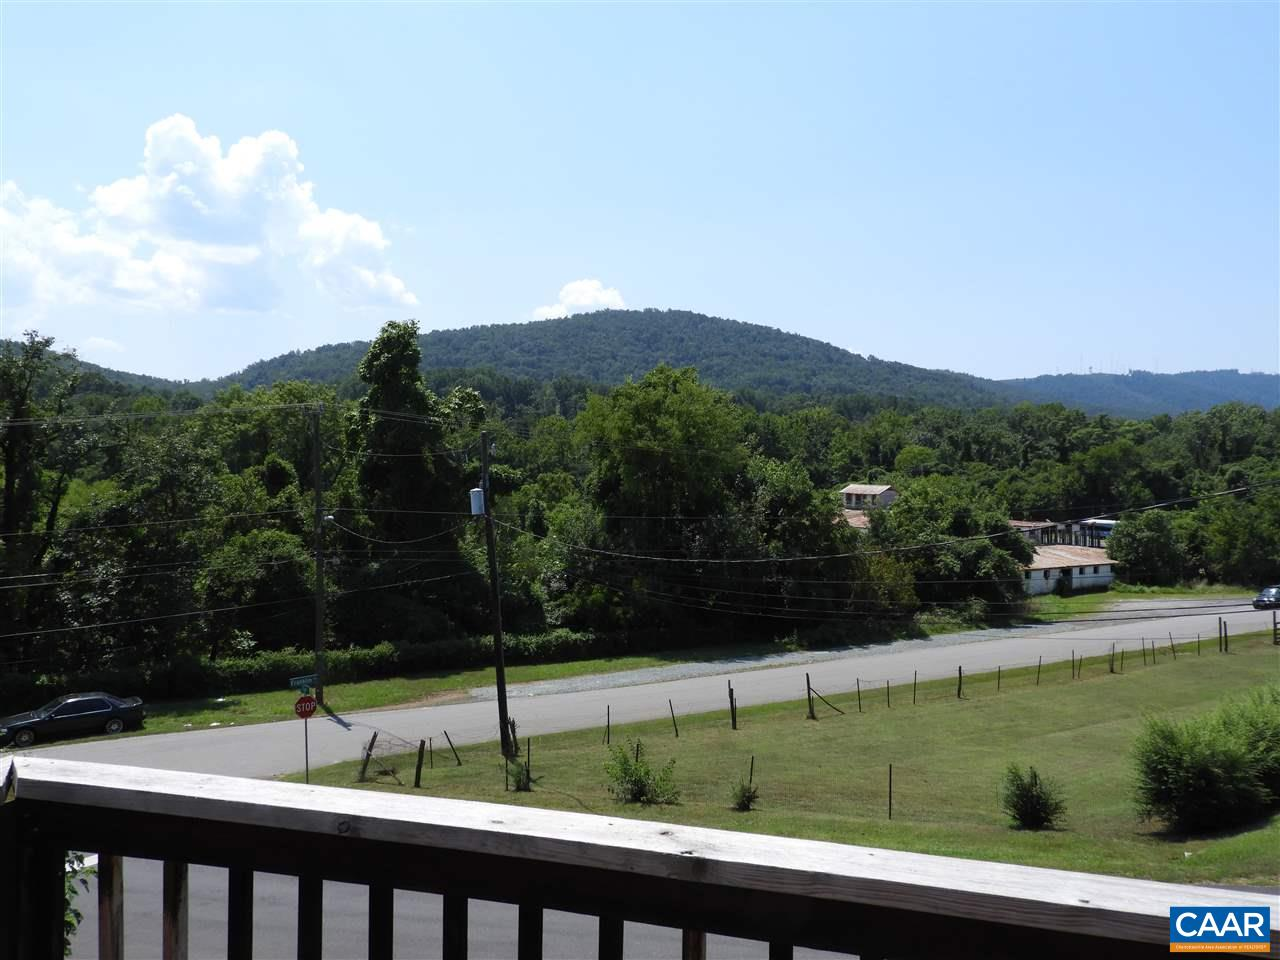 Wonderful Belmont opportunity with gorgeous mountain views. This home has lots of space, wood floors and two  decks to enjoy the view.  The large detach shed makes a great workshop with electric and rough in plumbing.  This location has easy access to all Charlottesville has to offer.  Interstate 64 is a few minutes away.